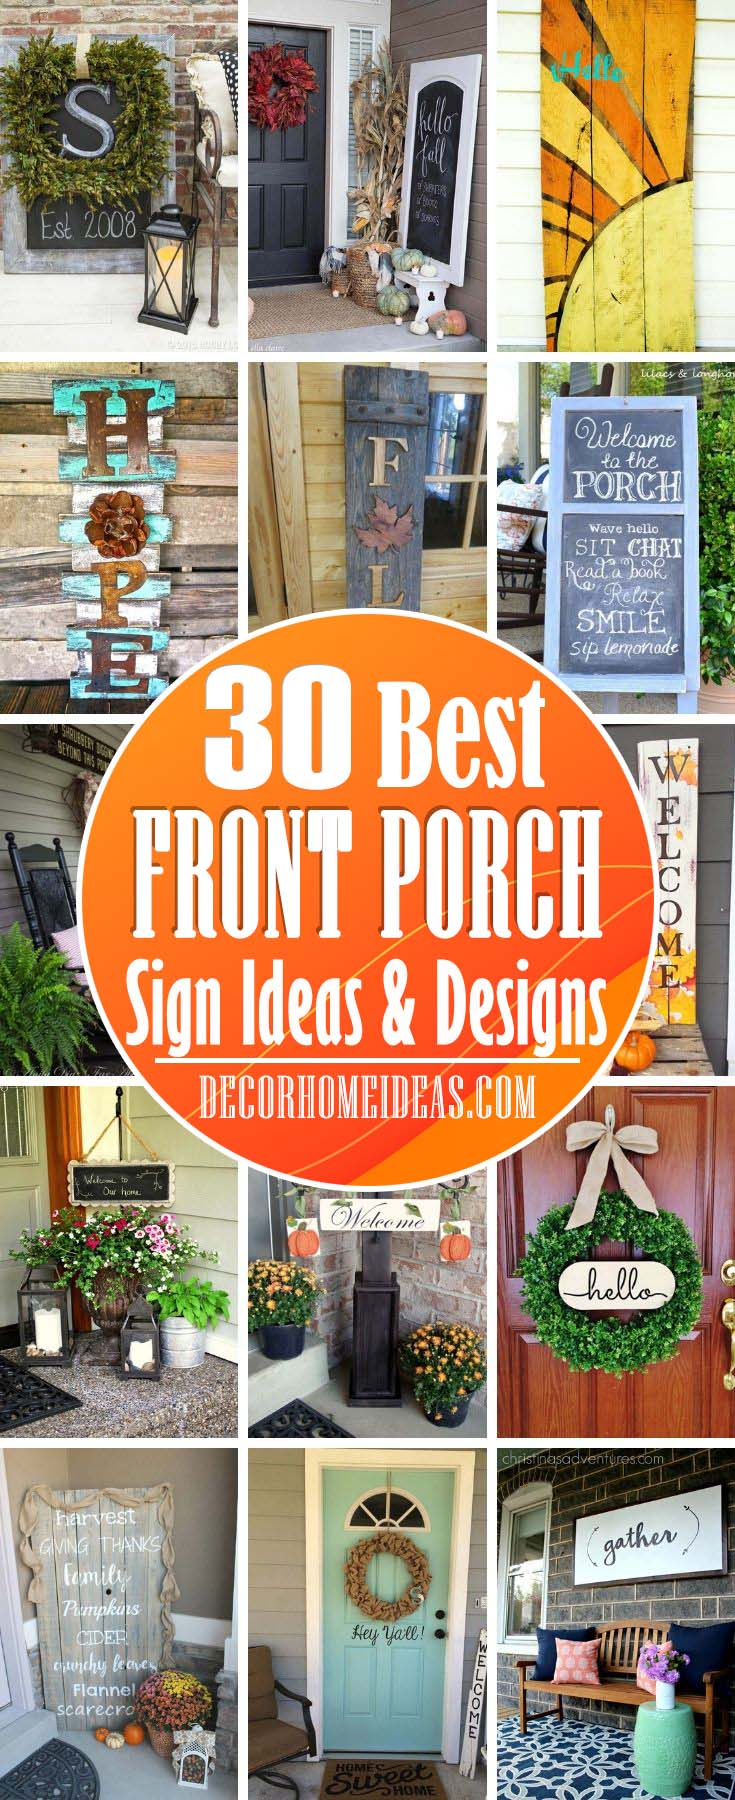 Best Front Porch Sign Ideas. DIY front porch sign ideas to make your home more welcoming and inviting. Budget-friendly projects that you can do in no time. #diy #sign #porch #decorhomeideas